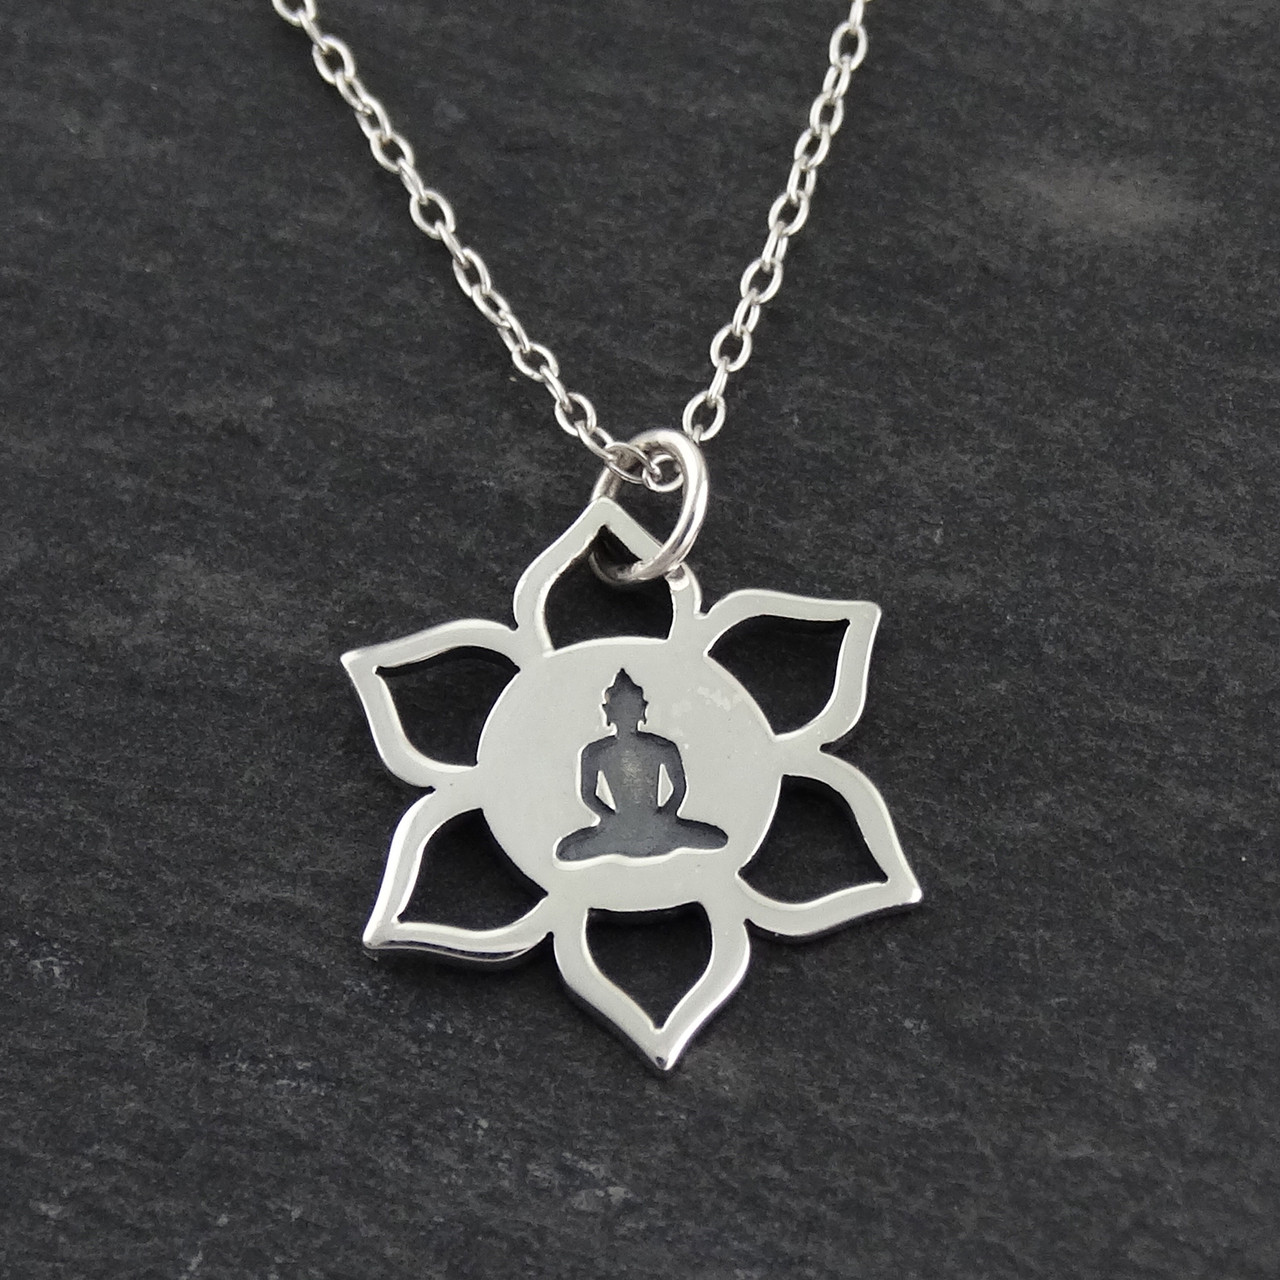 Buddha lotus flower necklace in 925 sterling silver fashionjunkie4life lotus flower buddha necklace 925 sterling silver izmirmasajfo Images